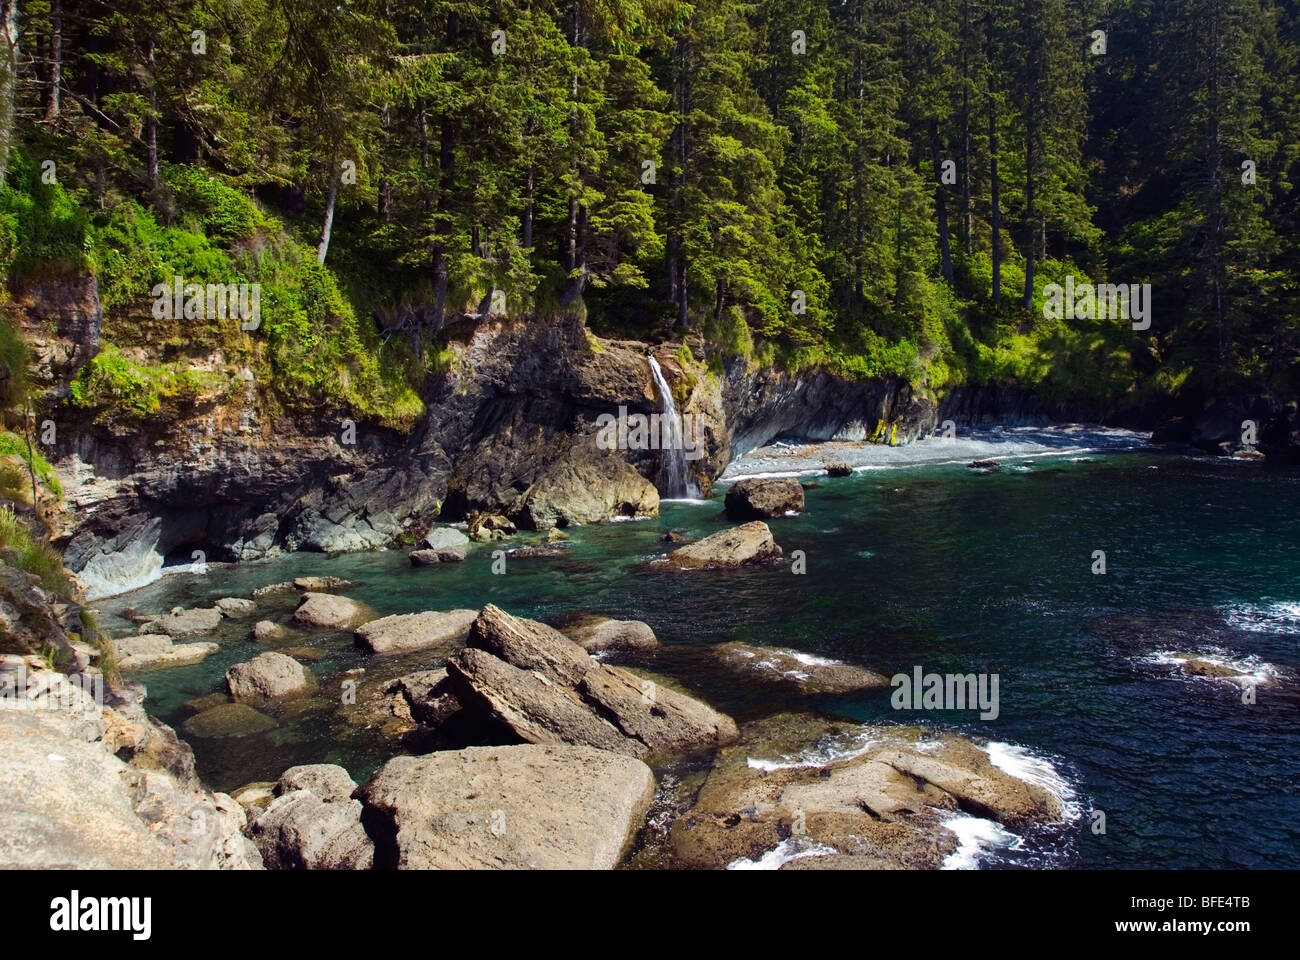 A waterfall,  Sombrio Beach on the Juan de Fuca Marine Trail, Vancouver Island, British Columbia, Canada - Stock Image